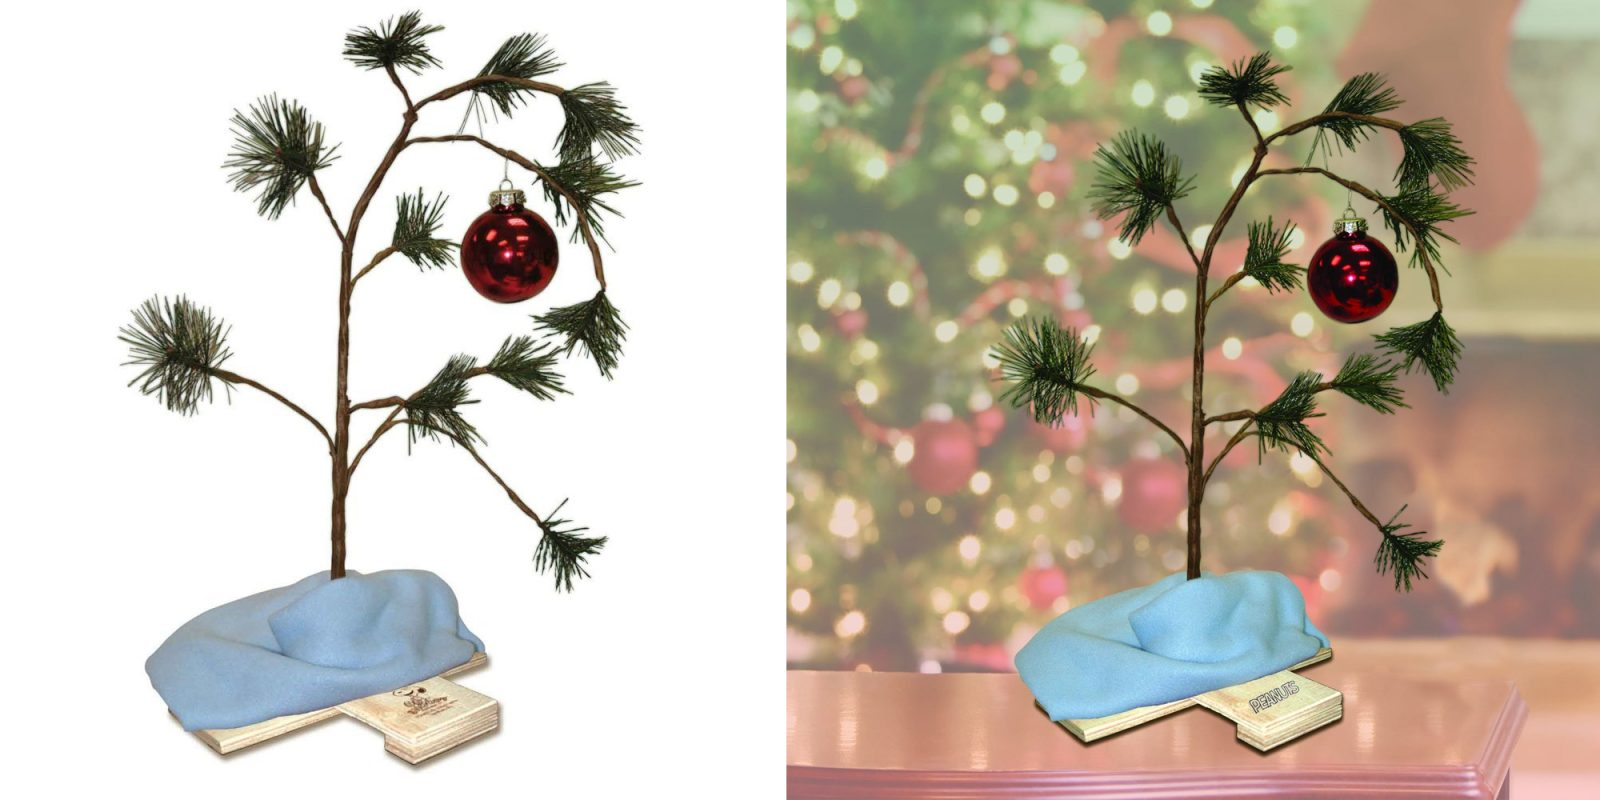 Own The Peanuts Charlie Brown Christmas Tree For Only $6